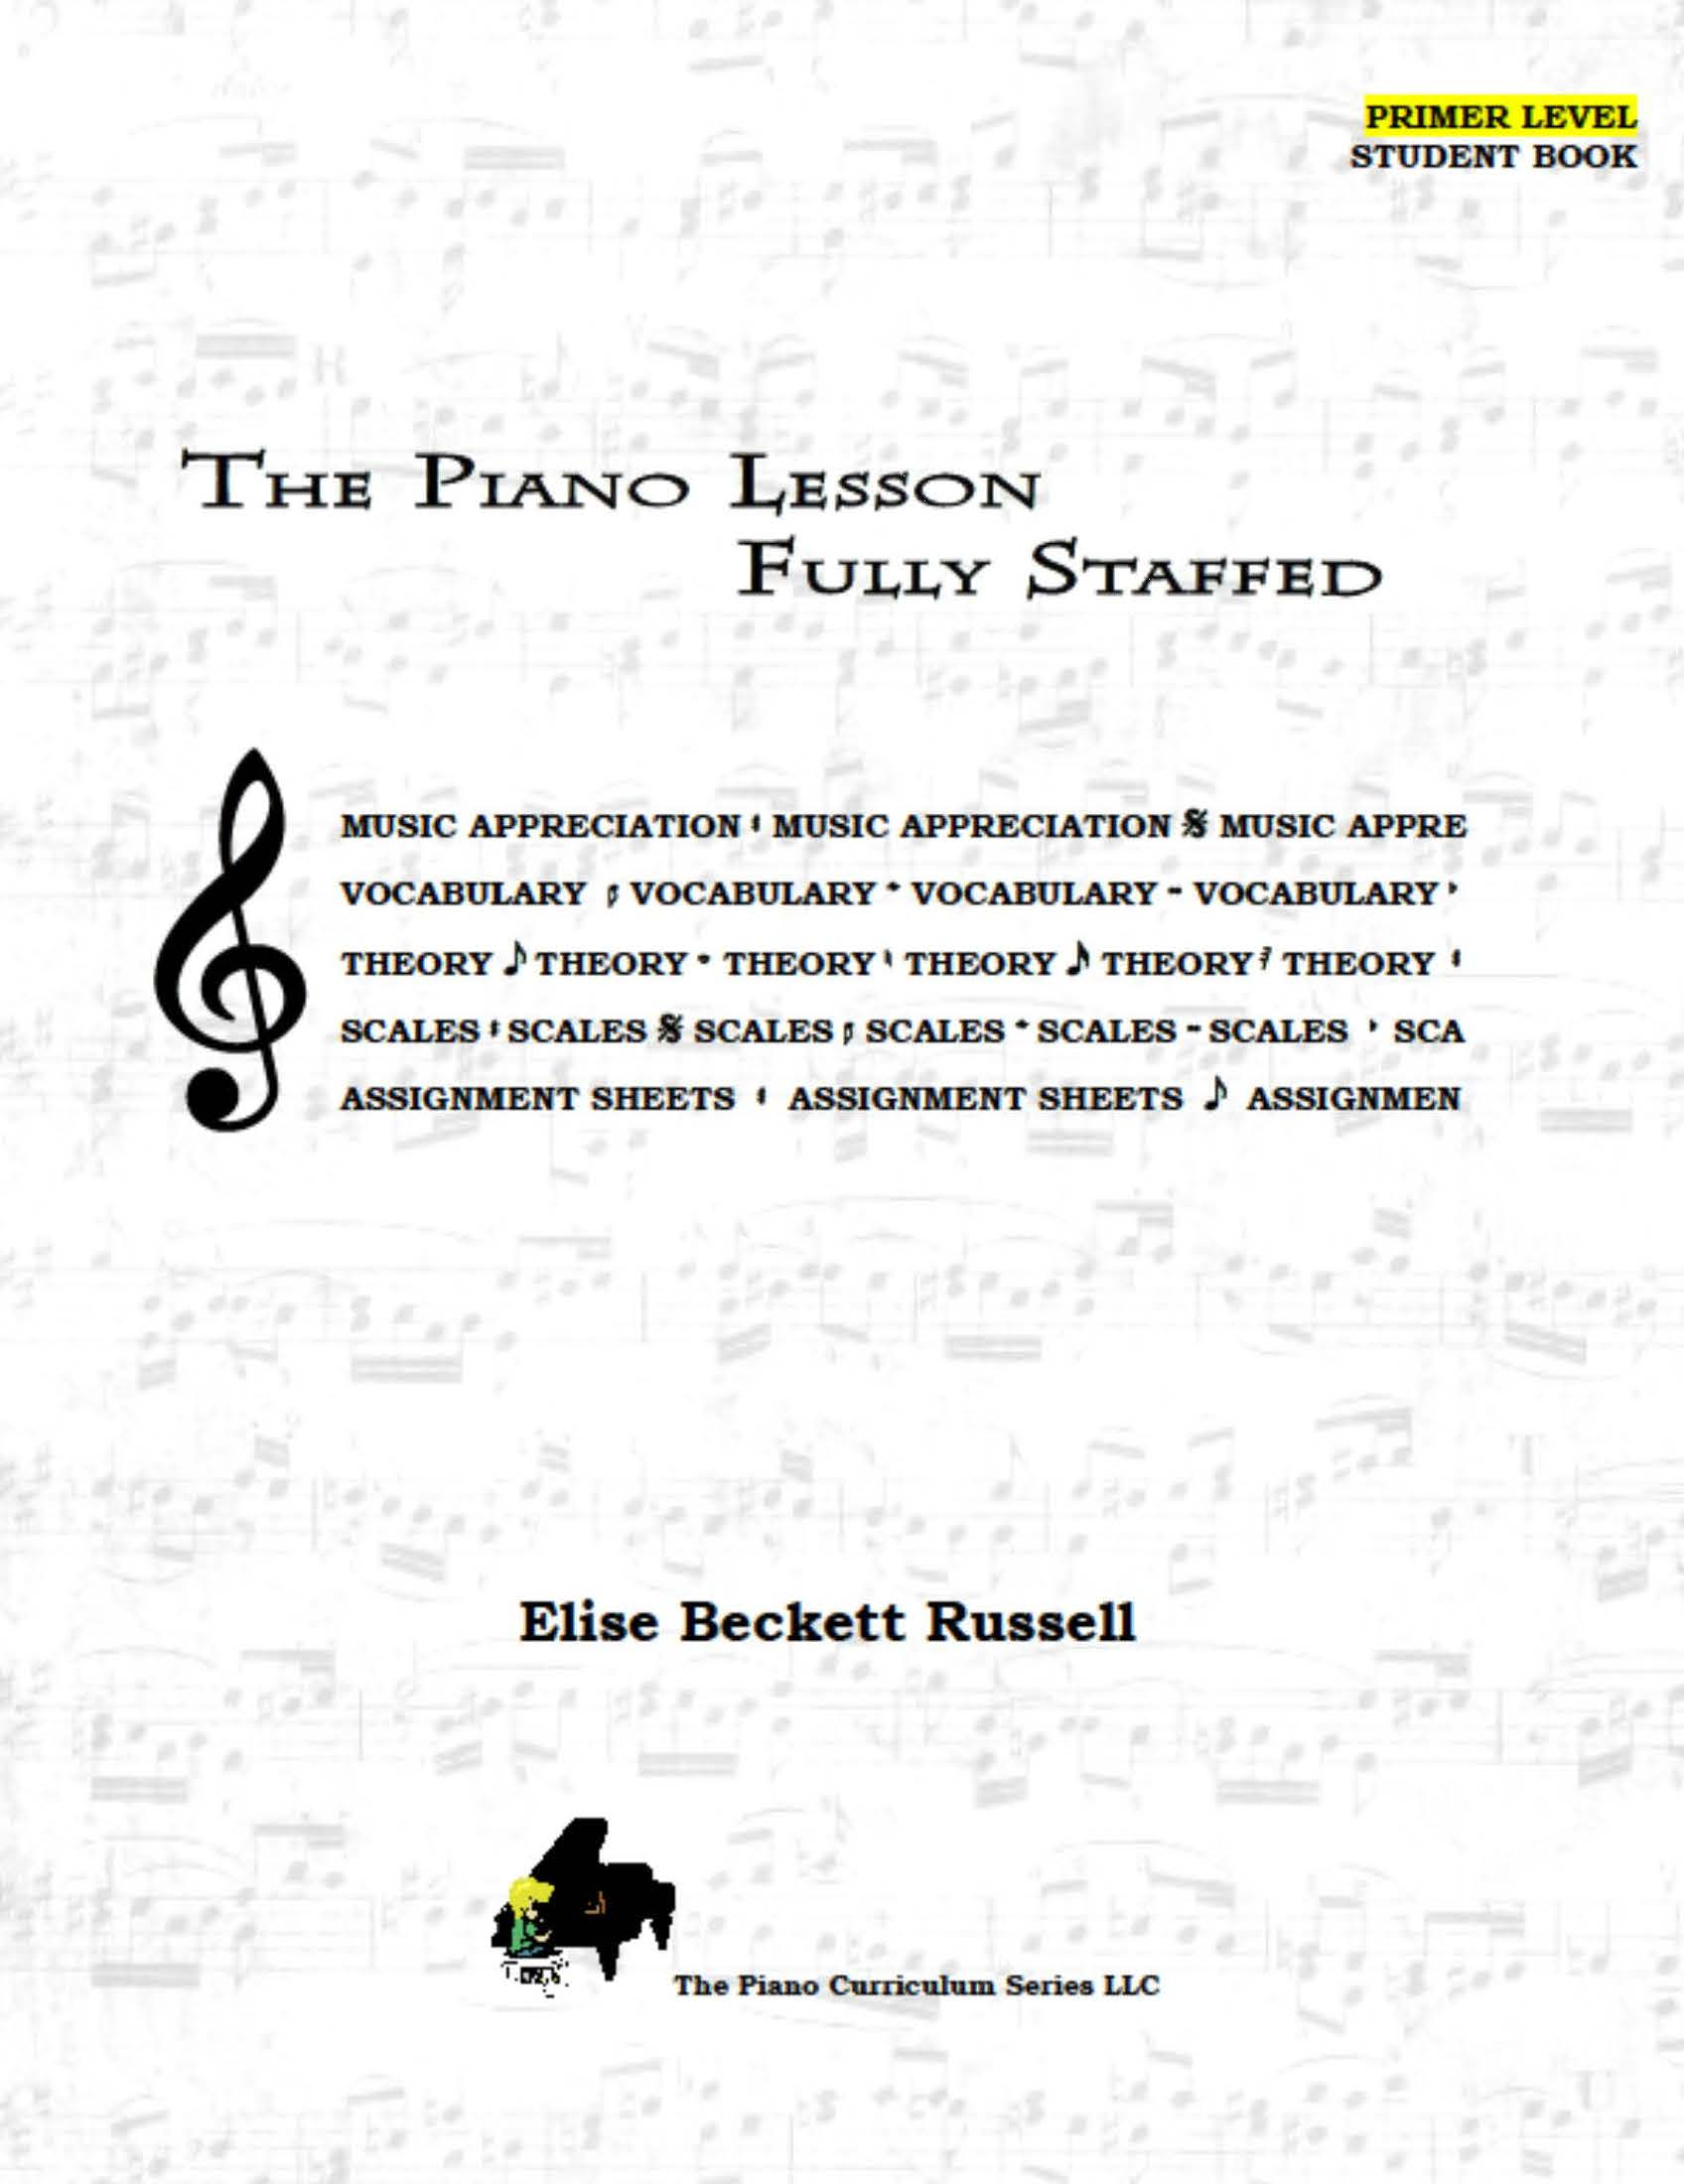 the piano lesson teacher manual p 5 piano curriculum series rh pcspiano com piano lesson made easy level 1 piano lesson made easy